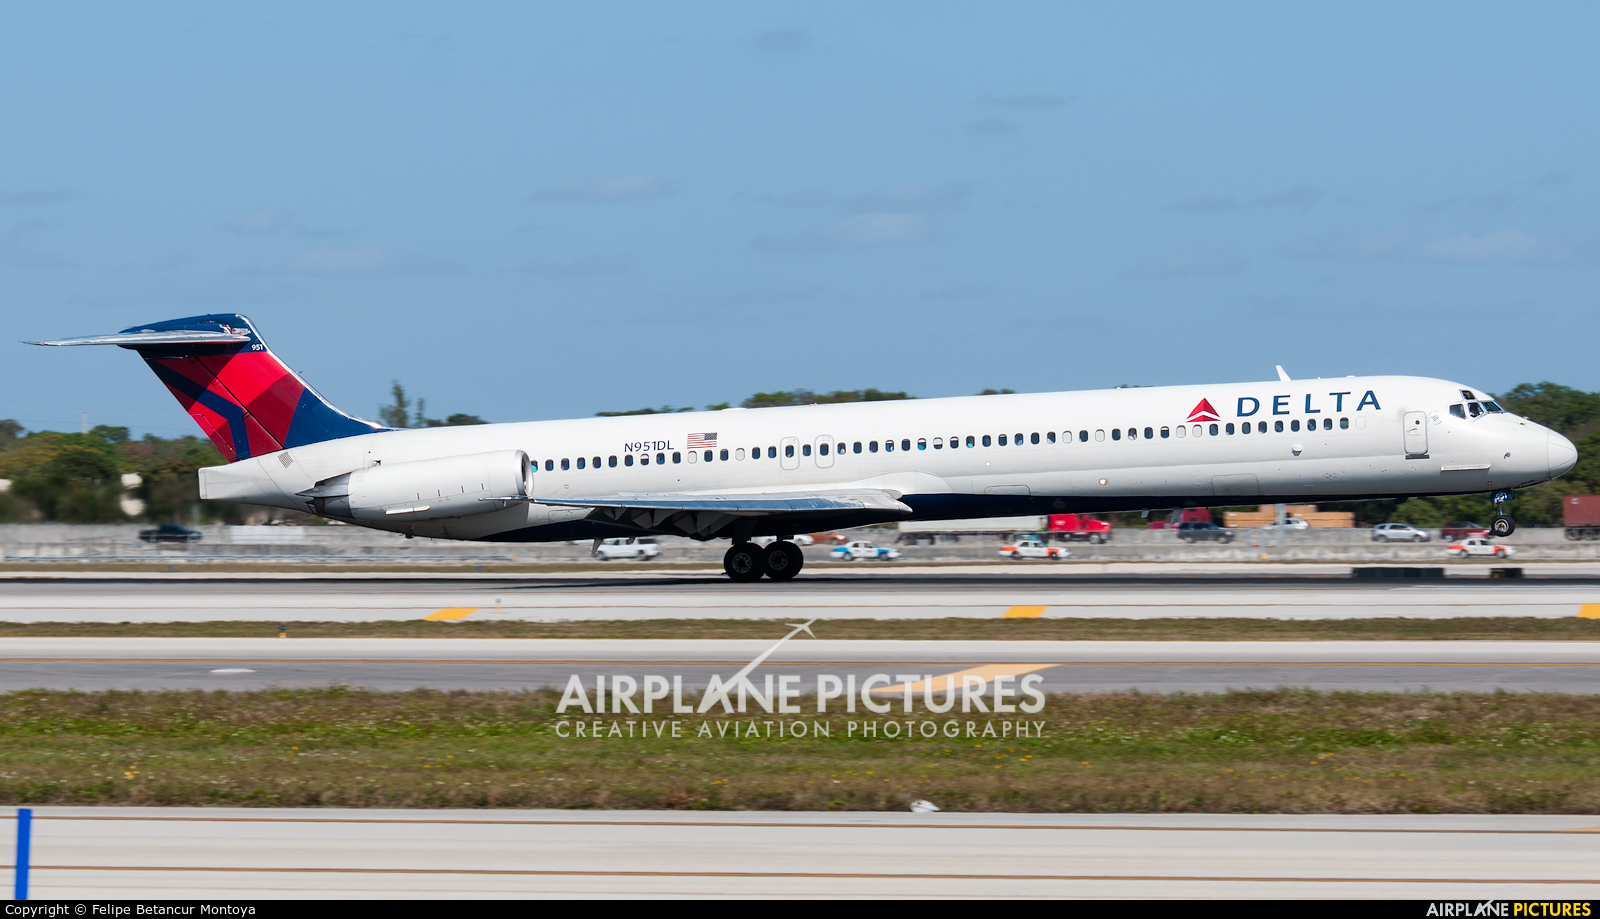 Delta Air Lines N951DL aircraft at Fort Lauderdale - Hollywood Intl